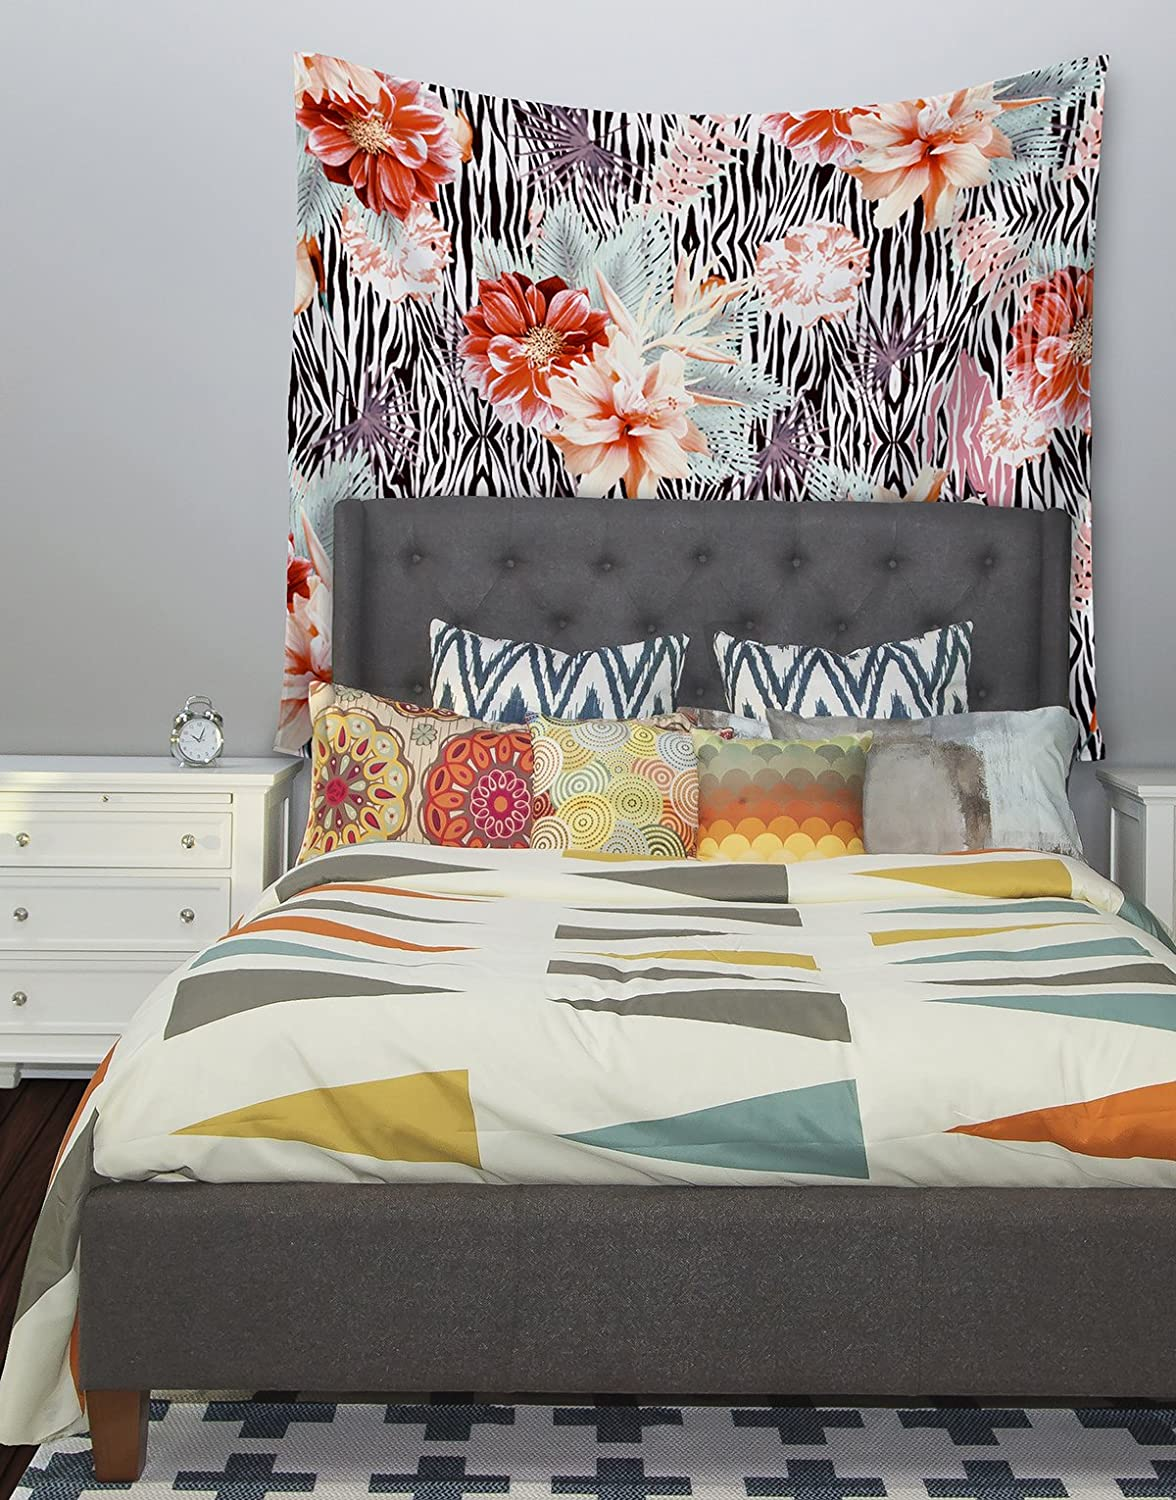 51 X 60 Kess InHouse Nika Martinez Tropical Fusion Red Floral Wall Tapestry